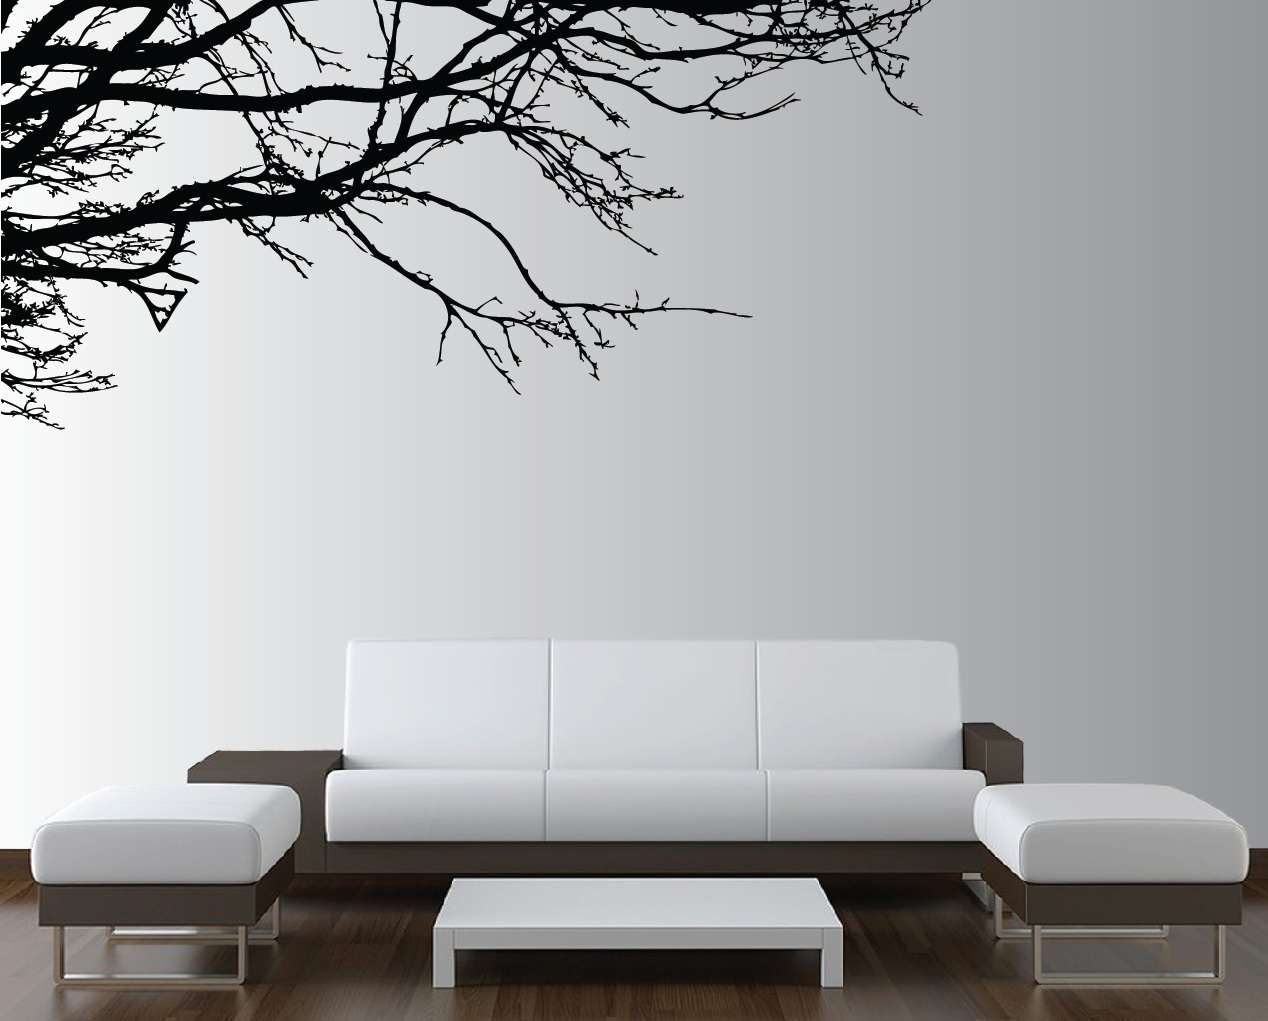 tree wall decals for living room large wall tree nursery decal oak branches 1130 24061